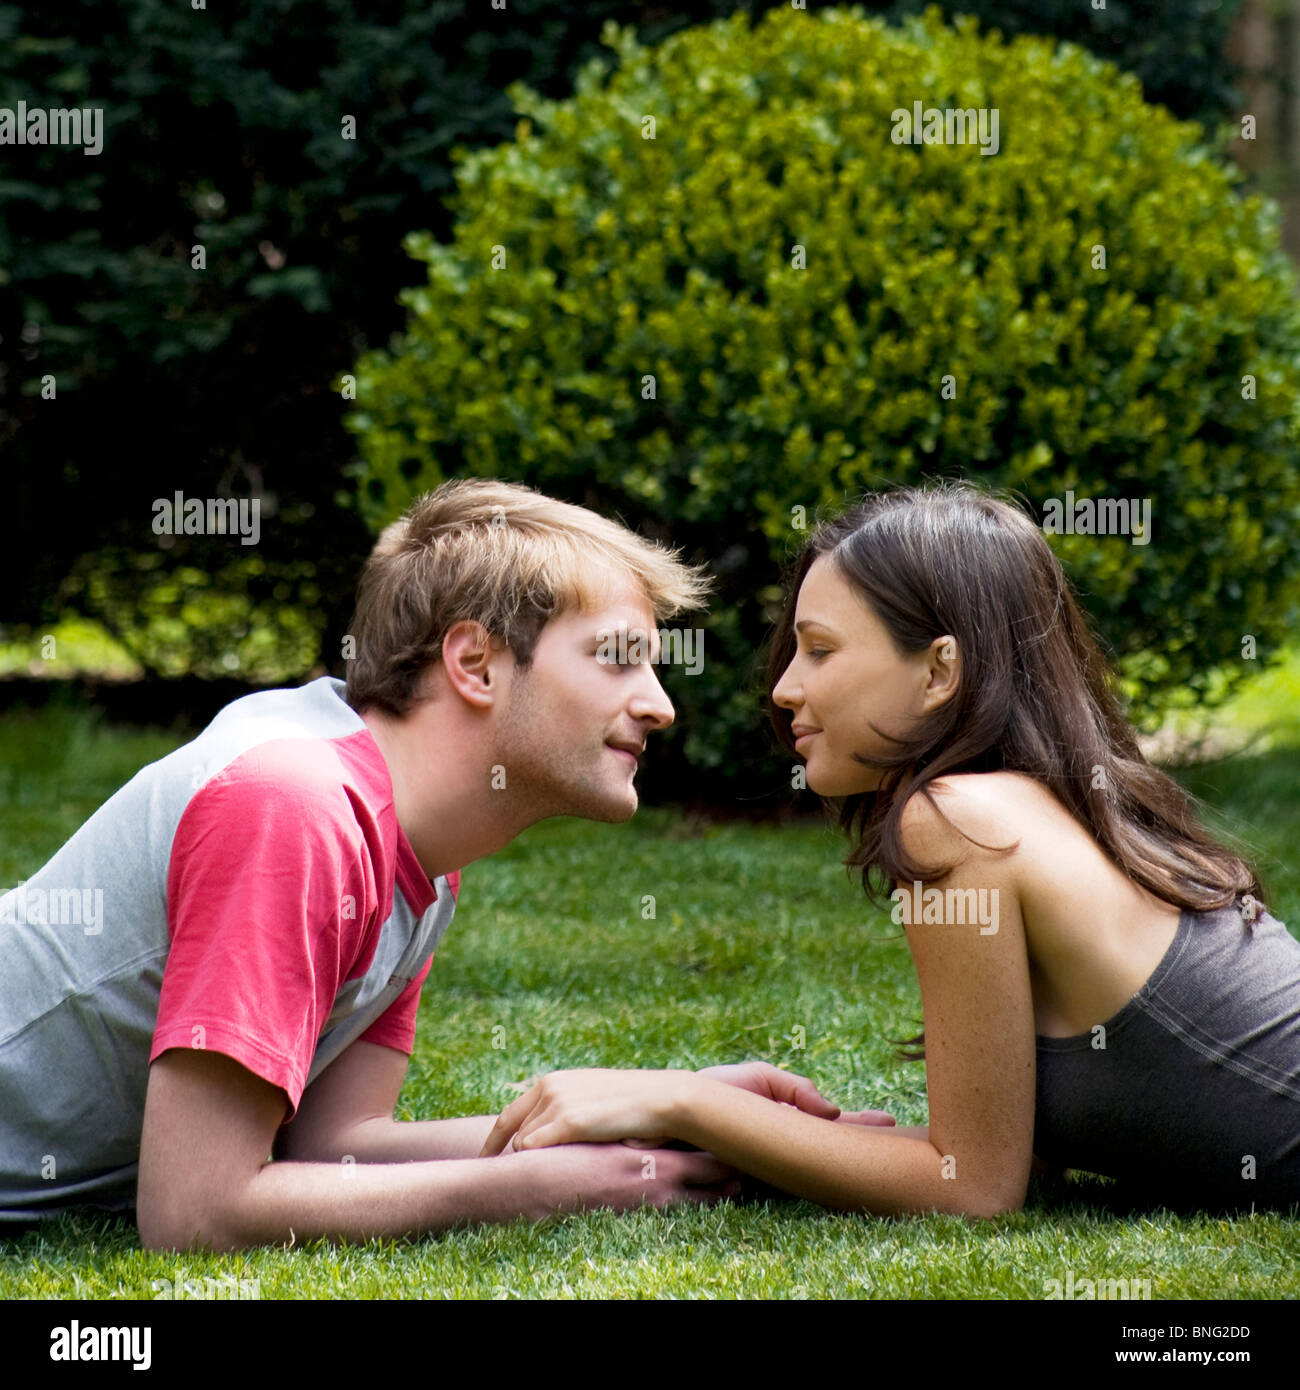 couple in the garden - Stock Image